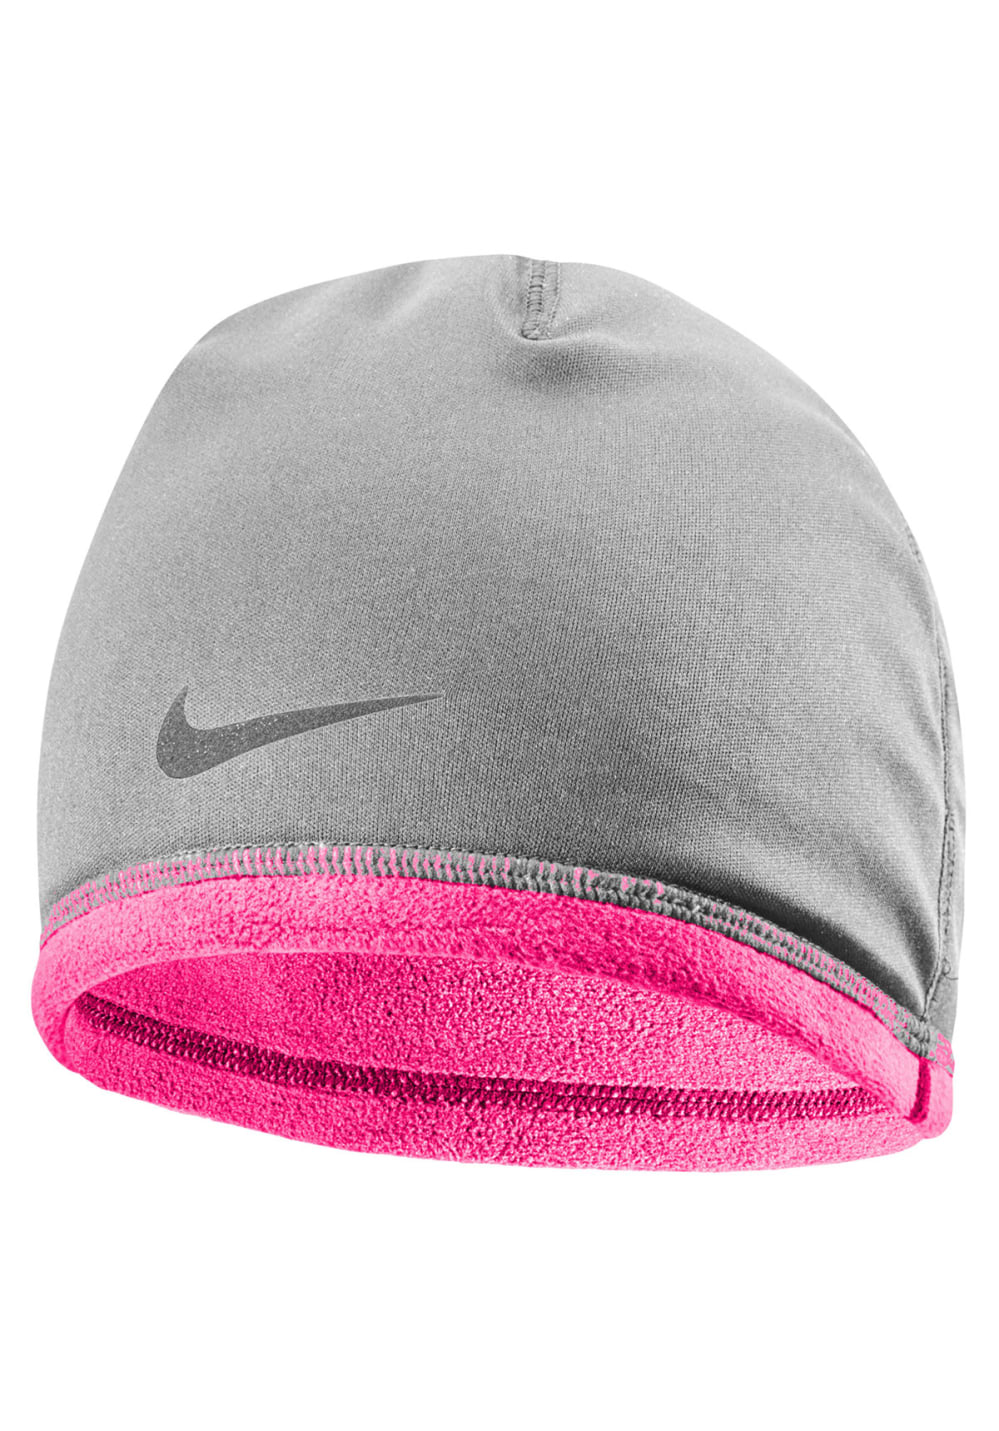 462b69d0f Nike Run Thermal Hat And Glove Set - Headdress for Women - Grey